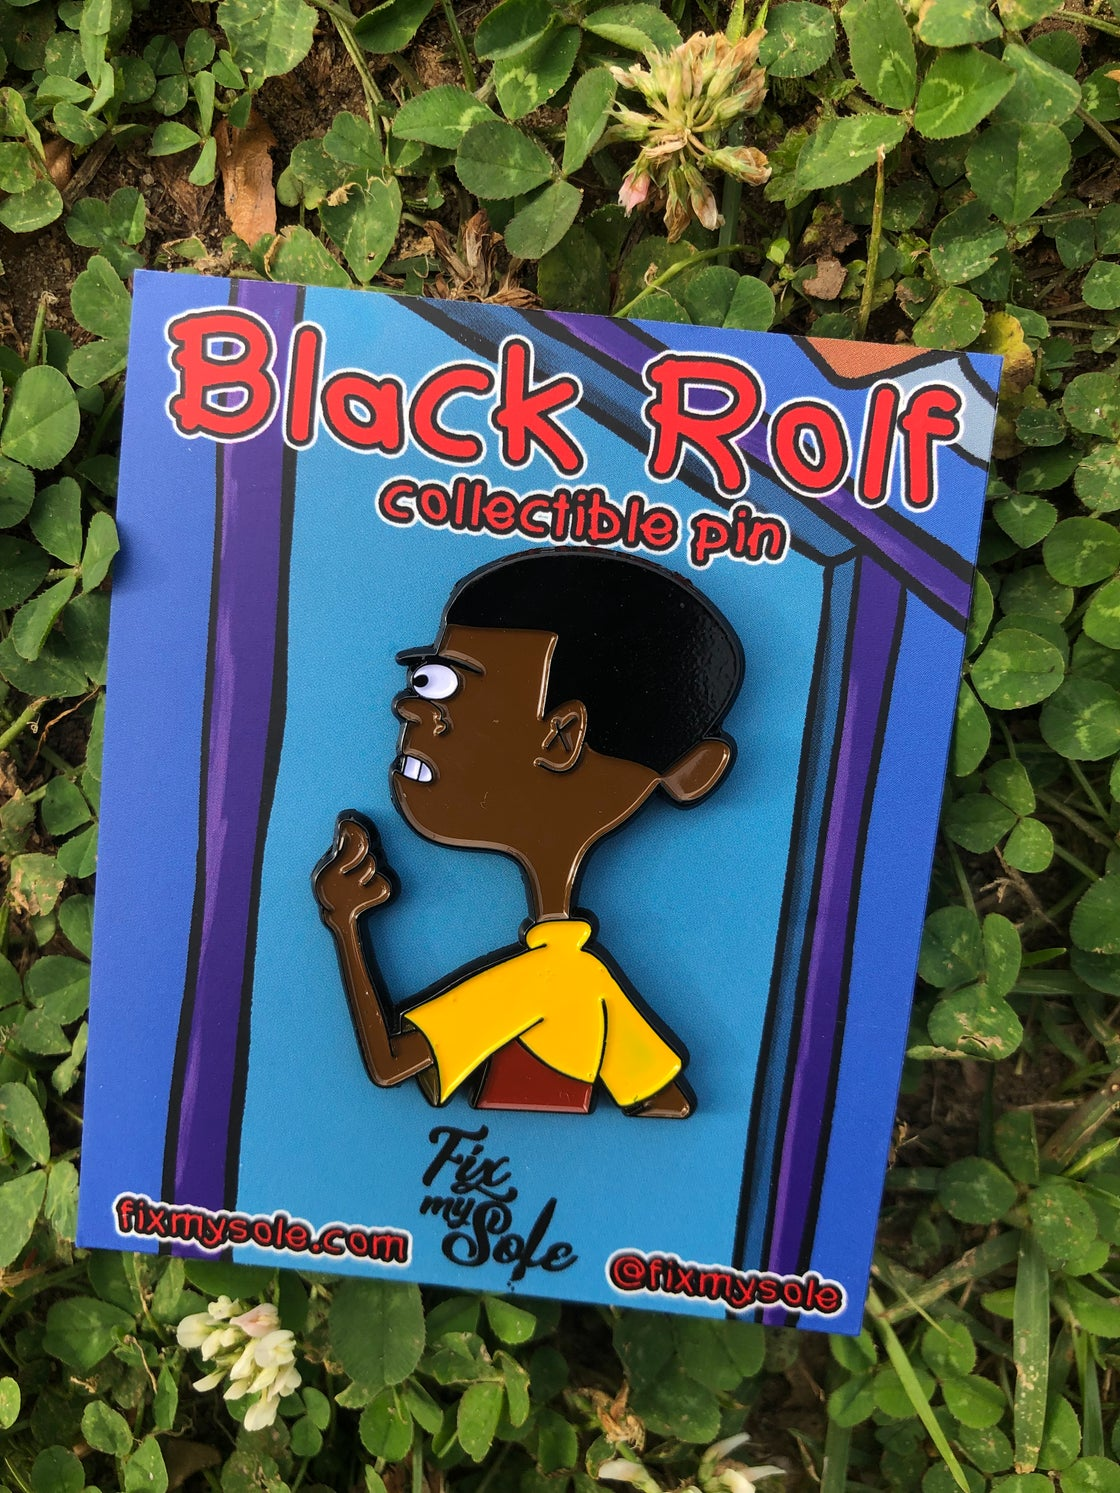 Image of Black Rolf pin